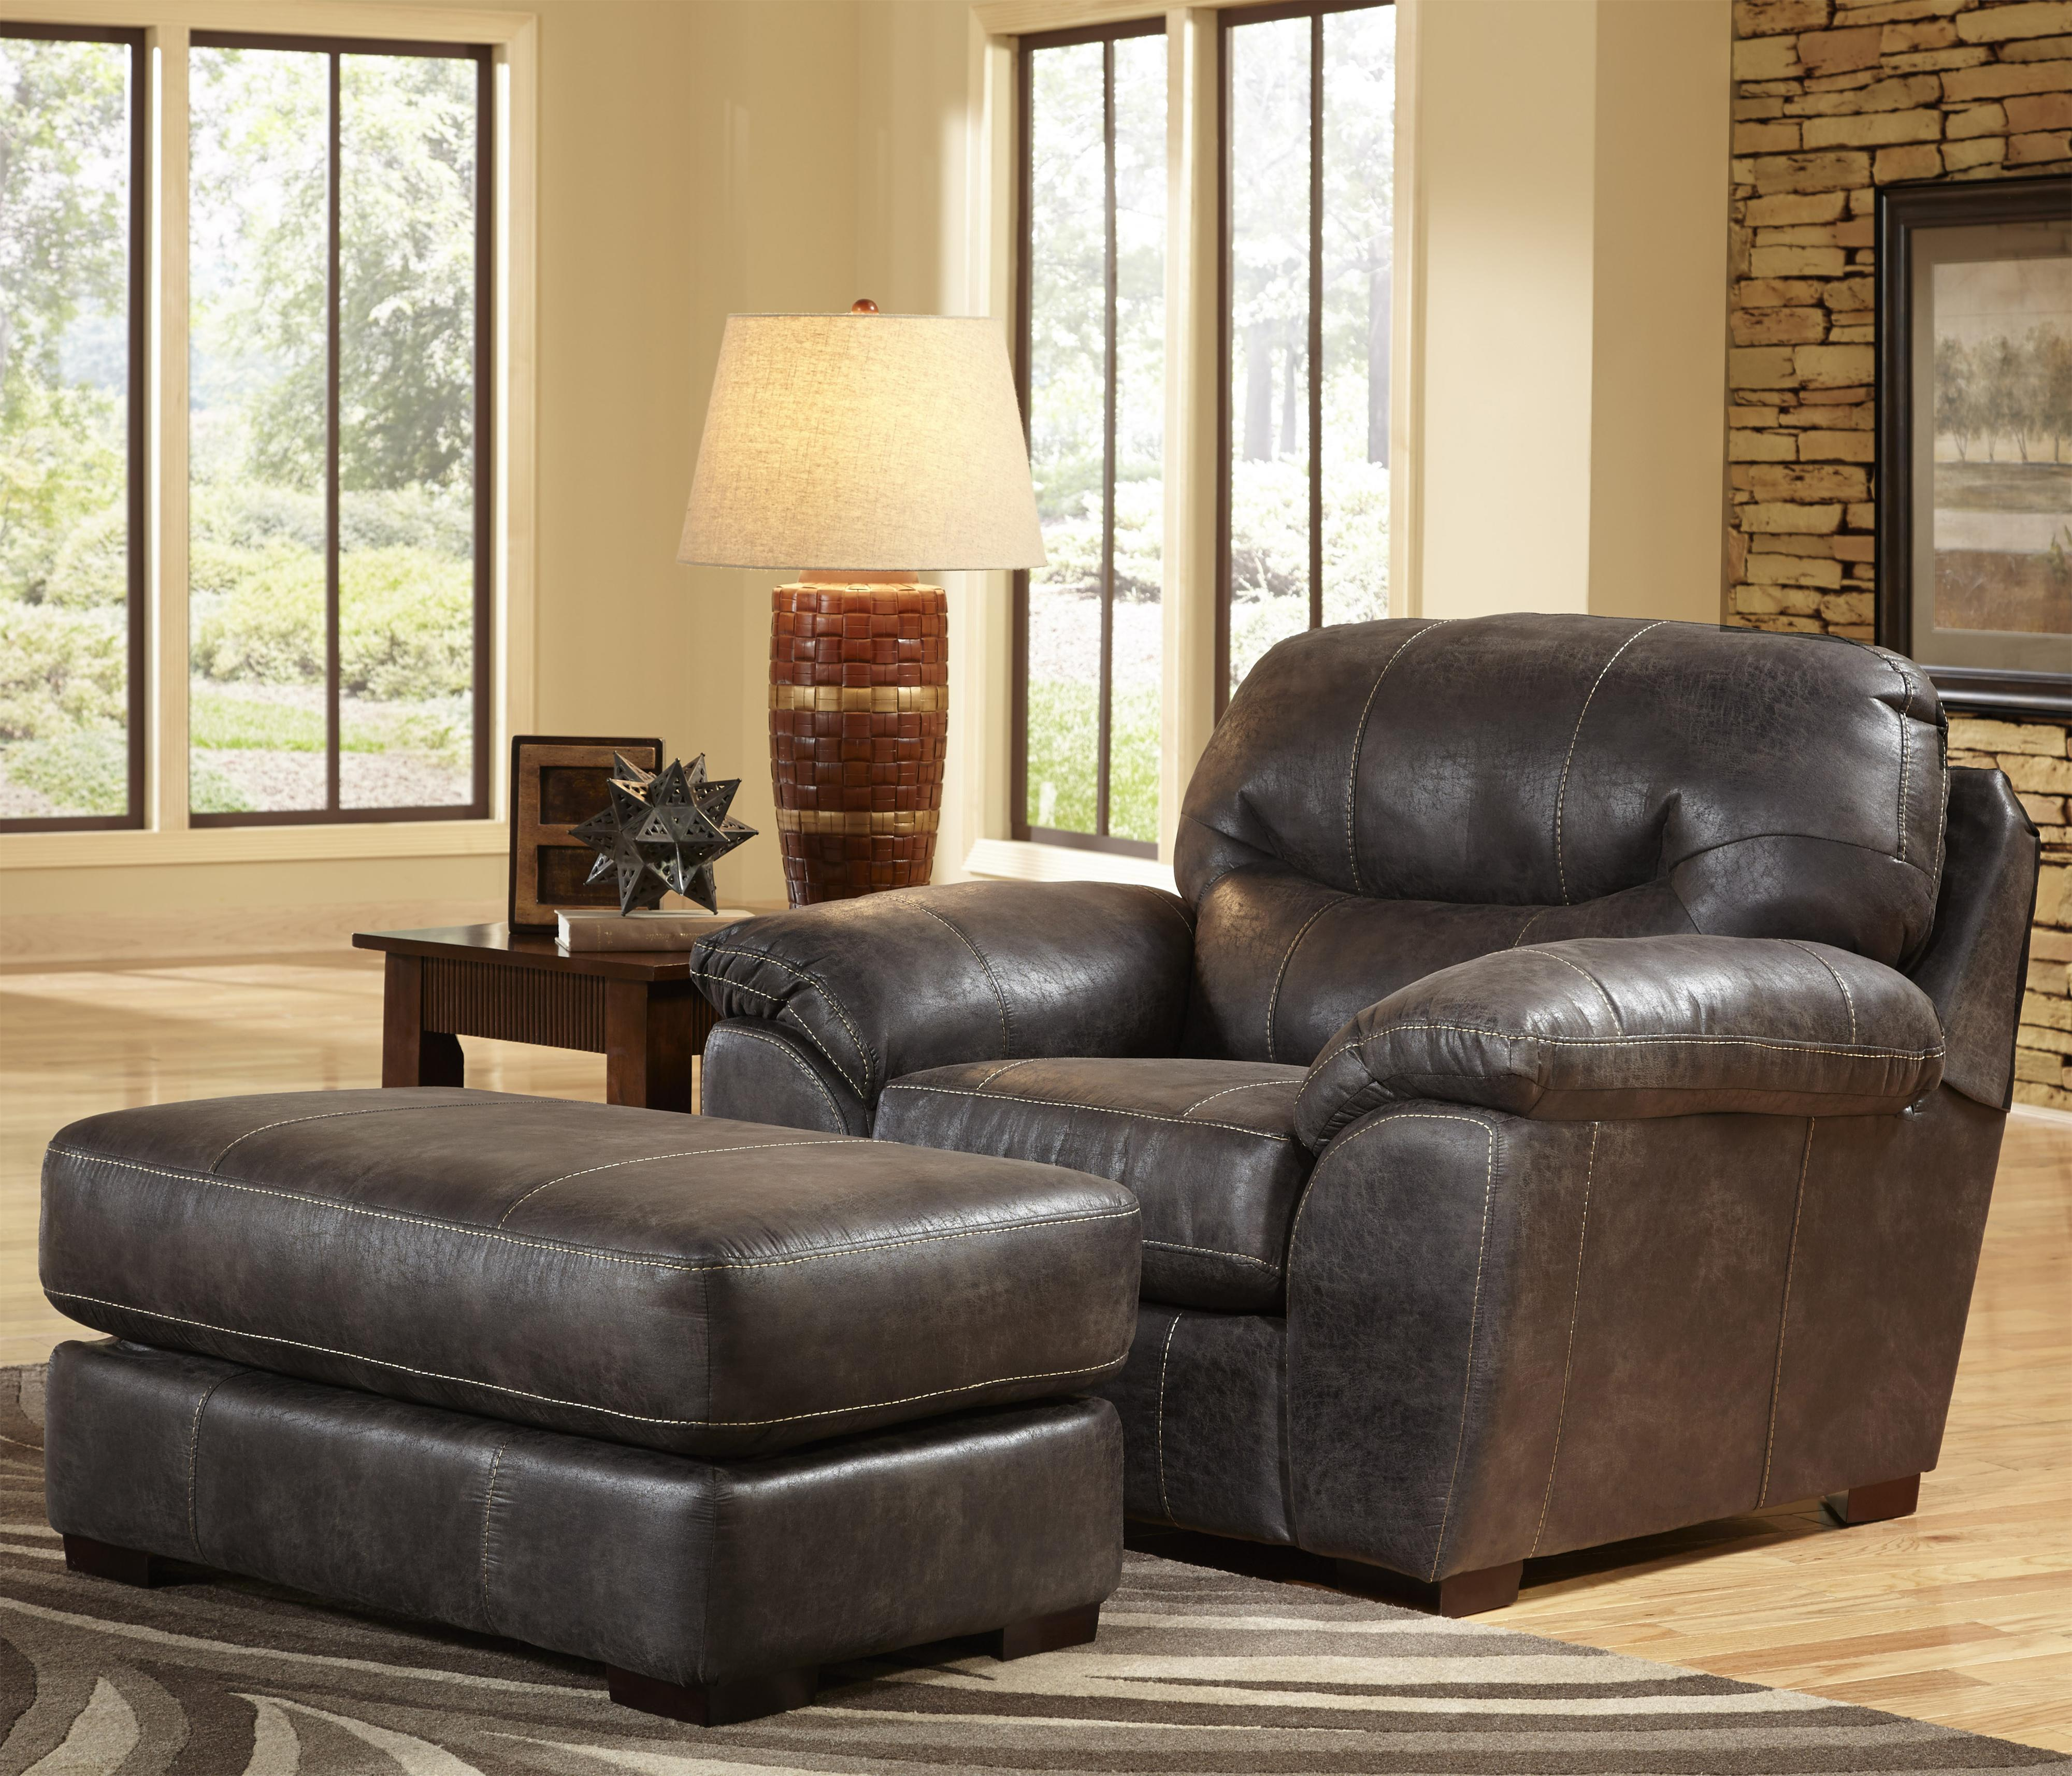 chair and a half for living rooms and family rooms by jackson furniture wolf and gardiner wolf. Black Bedroom Furniture Sets. Home Design Ideas